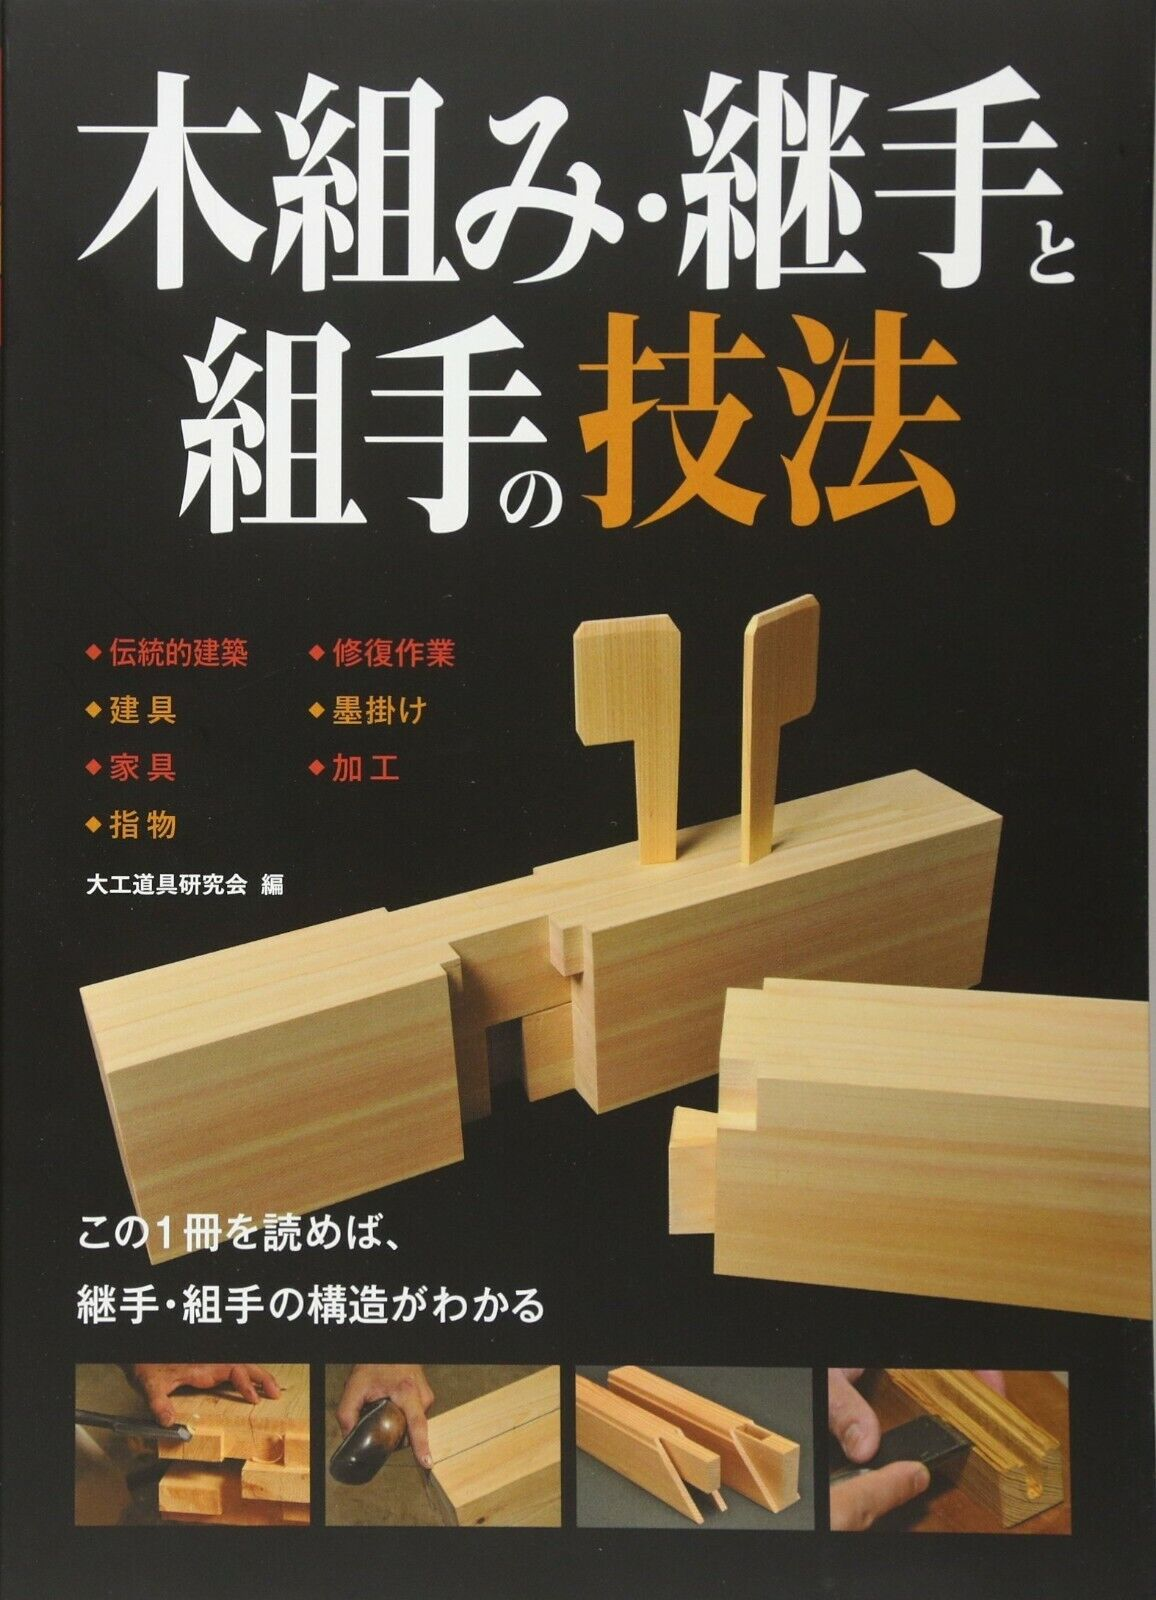 Traditional Japanese Carpentry Joint Frame Connection 1 Architecture Truss Brace